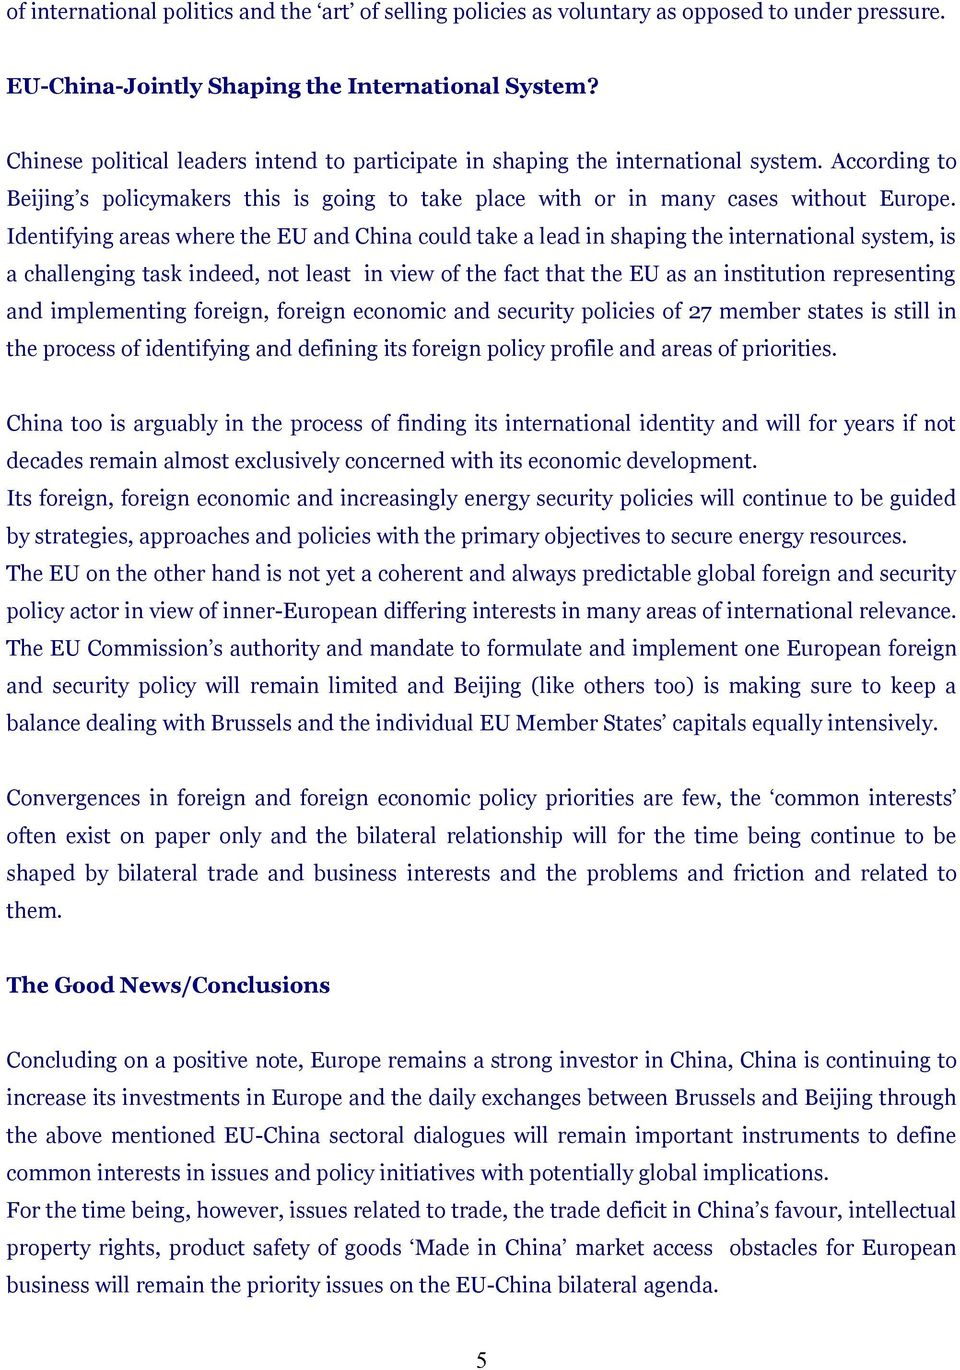 Identifying areas where the EU and China could take a lead in shaping the international system, is a challenging task indeed, not least in view of the fact that the EU as an institution representing